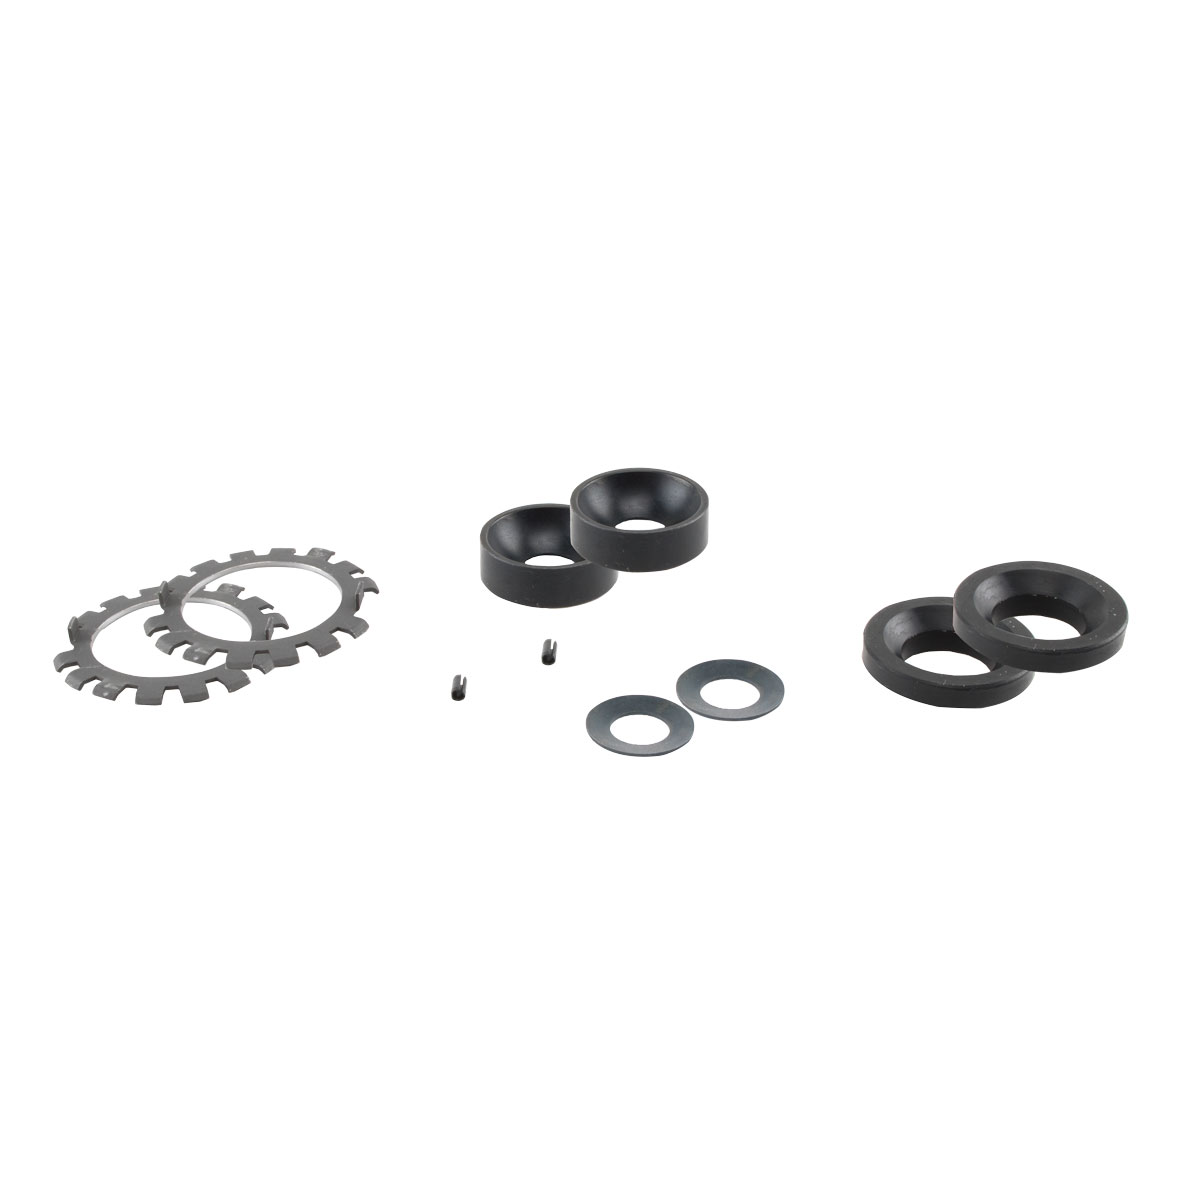 Synergy Manufacturing HD Adjustable Ball Joint Rebuild Kit  - JK